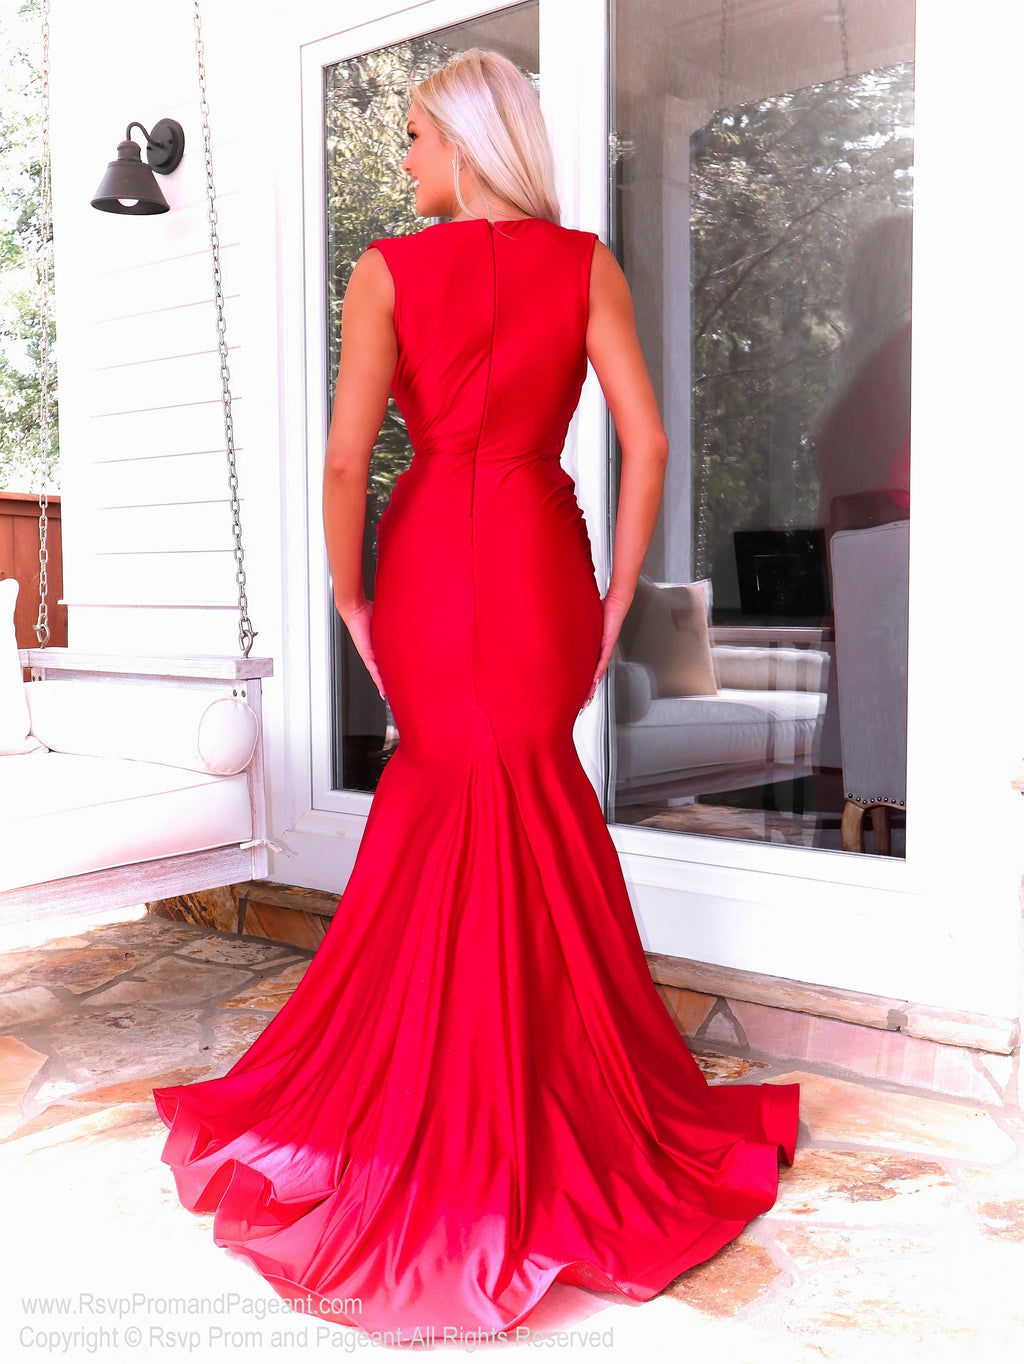 Back of Model in a jawdropping red gown with Its fitted silhouette and a sexy plunging neckline it will for sure be a show-stopper at your Prom! And its at RSVP Prom and Pageant, your source for the HOTTEST Prom and Pageant Dresses and exclusive evening gowns and located in Atlanta, Georgia!